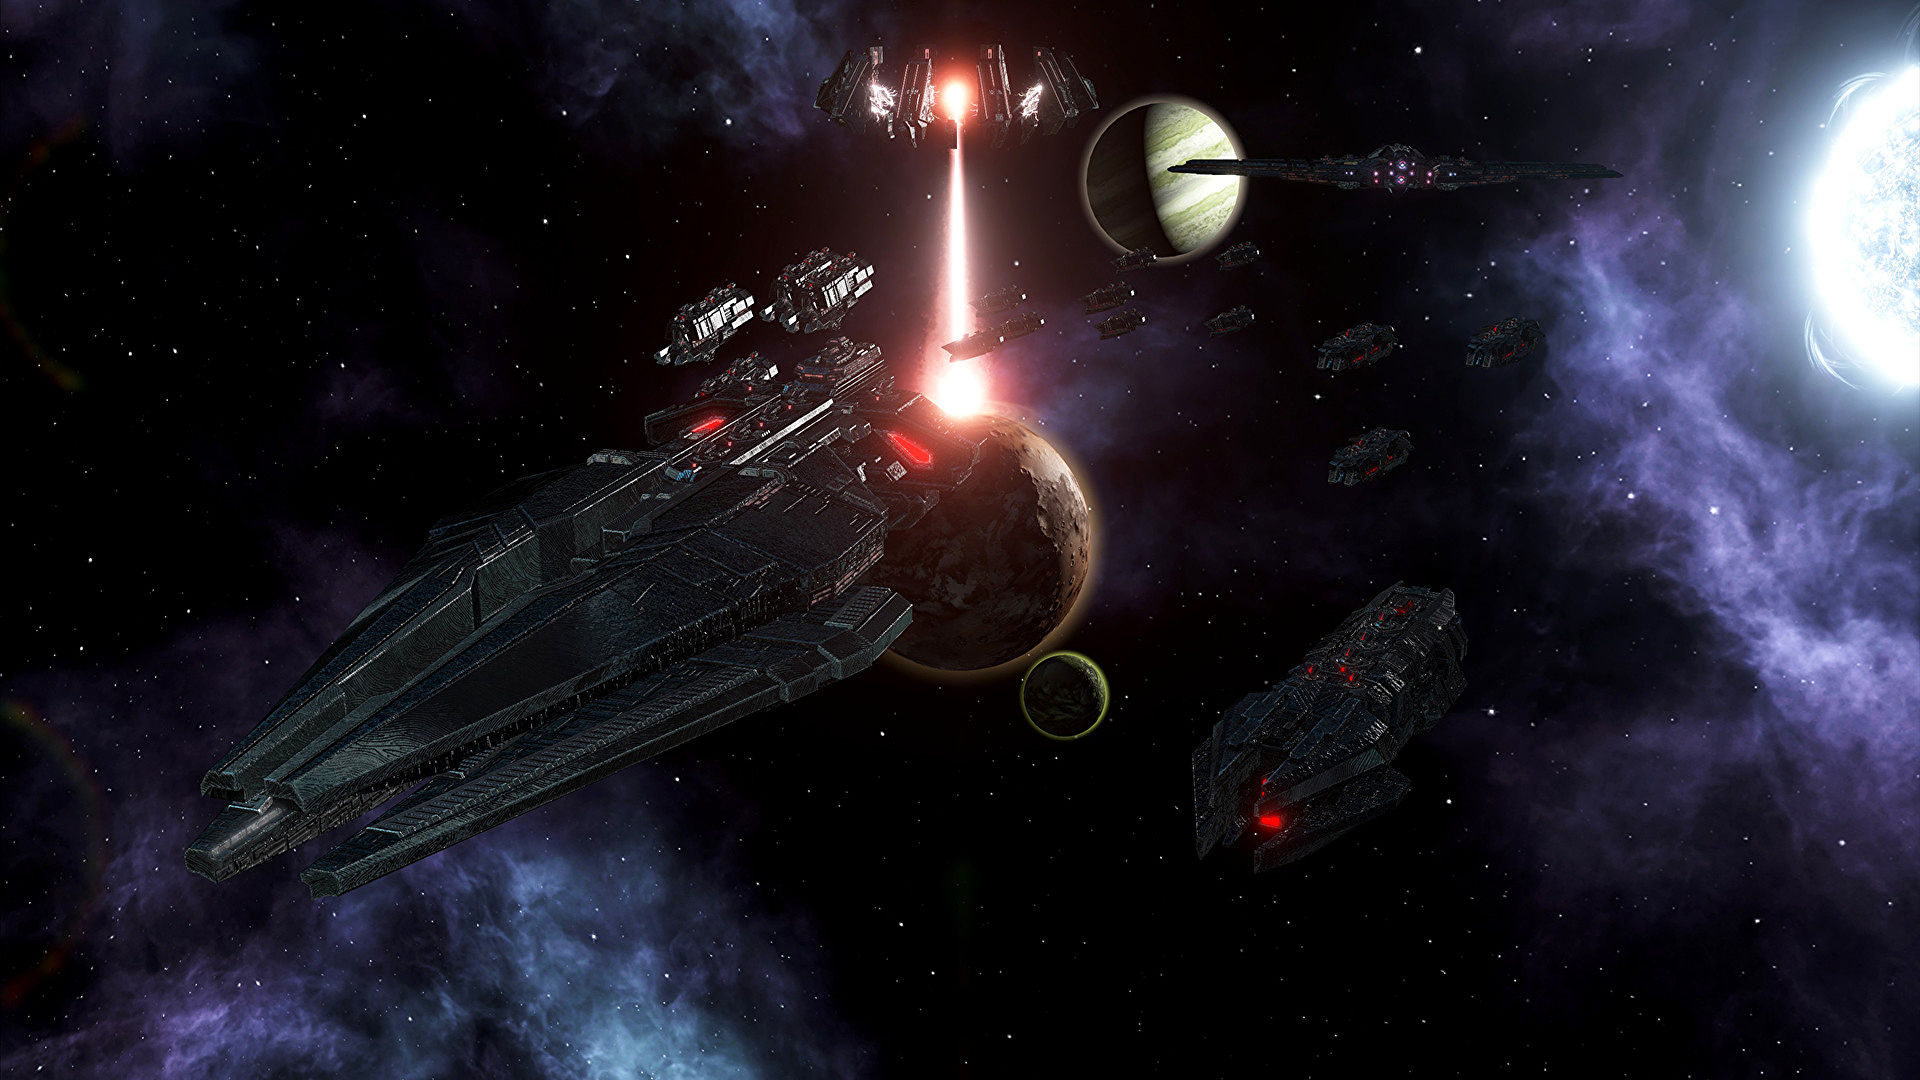 Stellaris: Nemesis lets you now become a star-destroying galactic threat